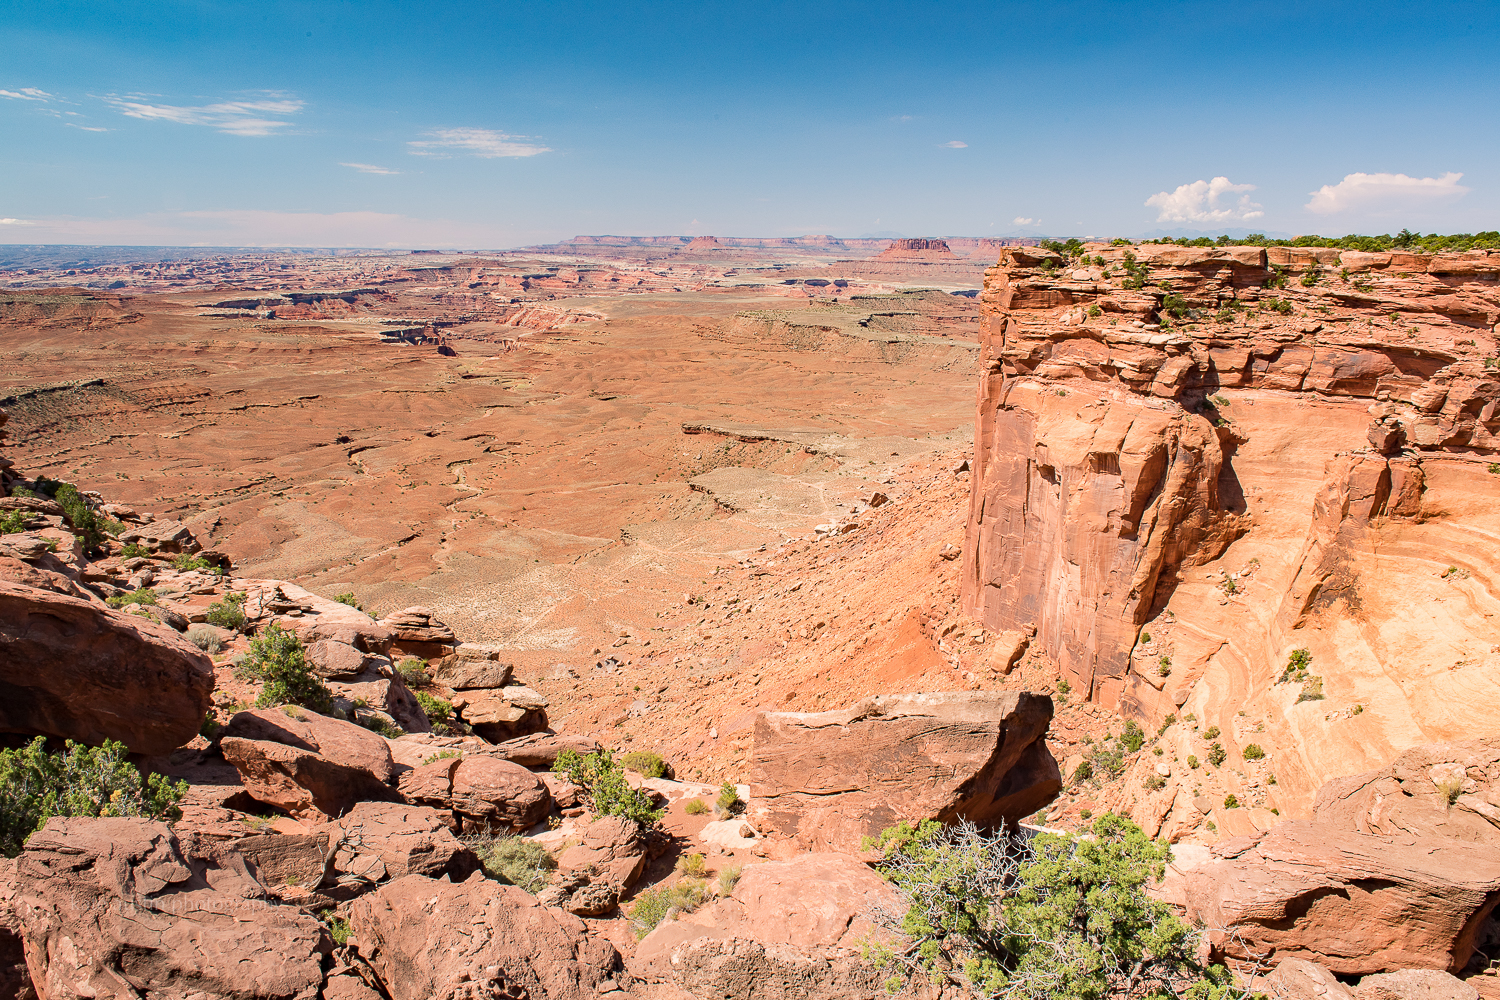 day37_murphytrail-canyonlands_moab201620160803-3.jpg